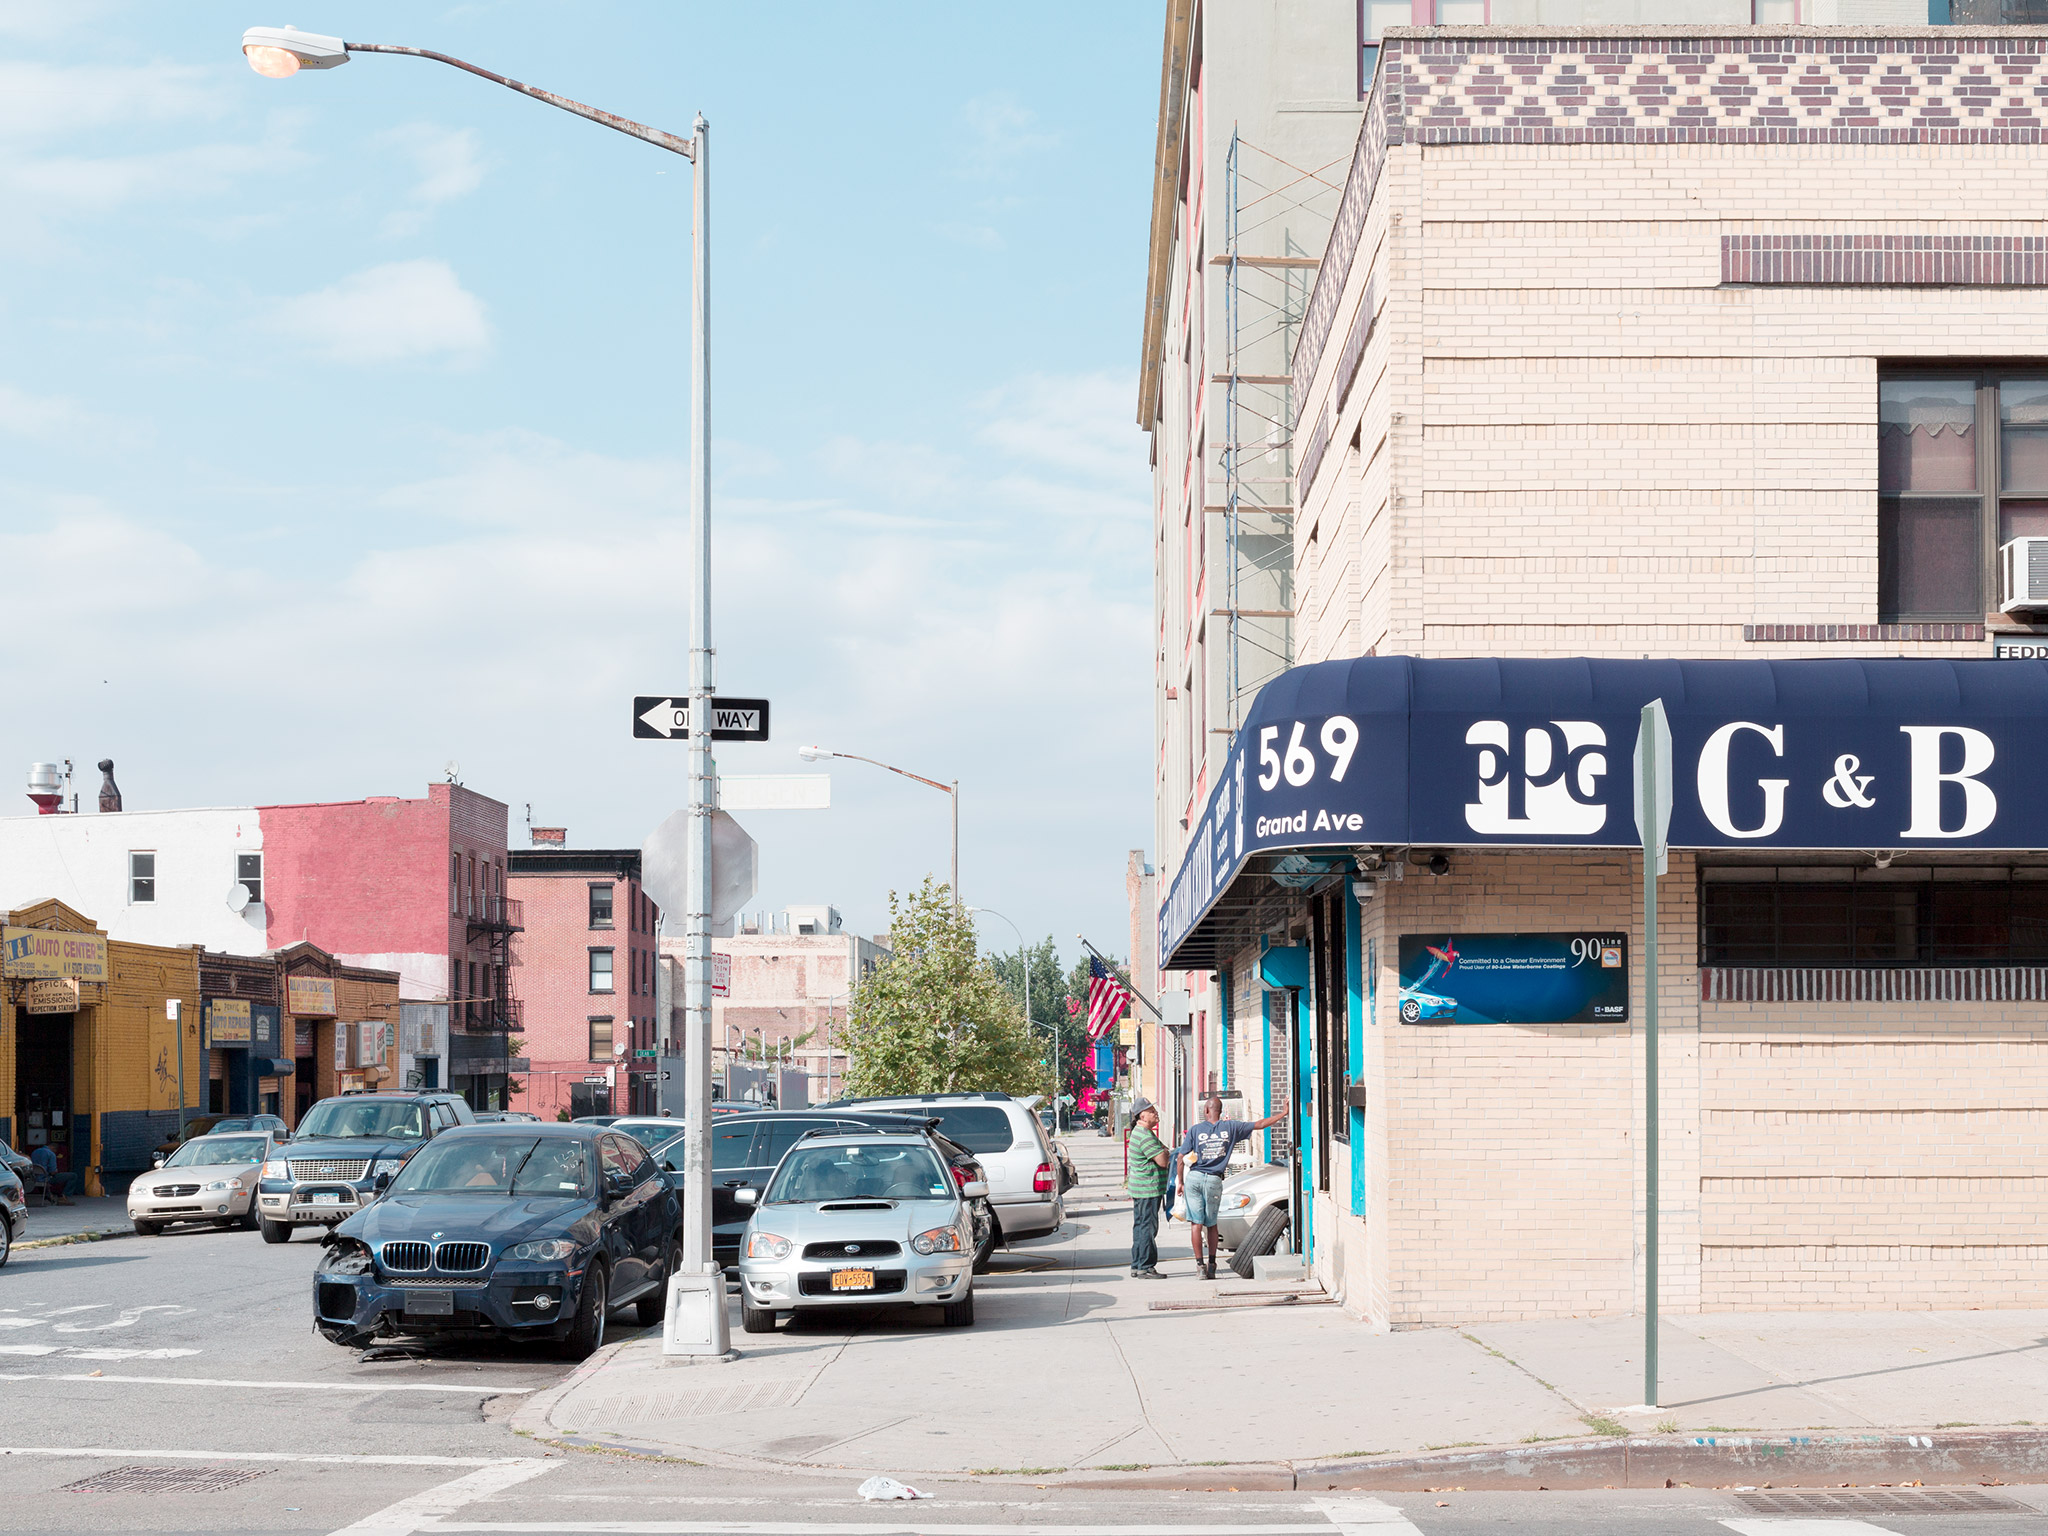 Day Lights   Crown Heights August 29th, 2013    Bergen Street and Grand Ave.   40.678127, -73.96219